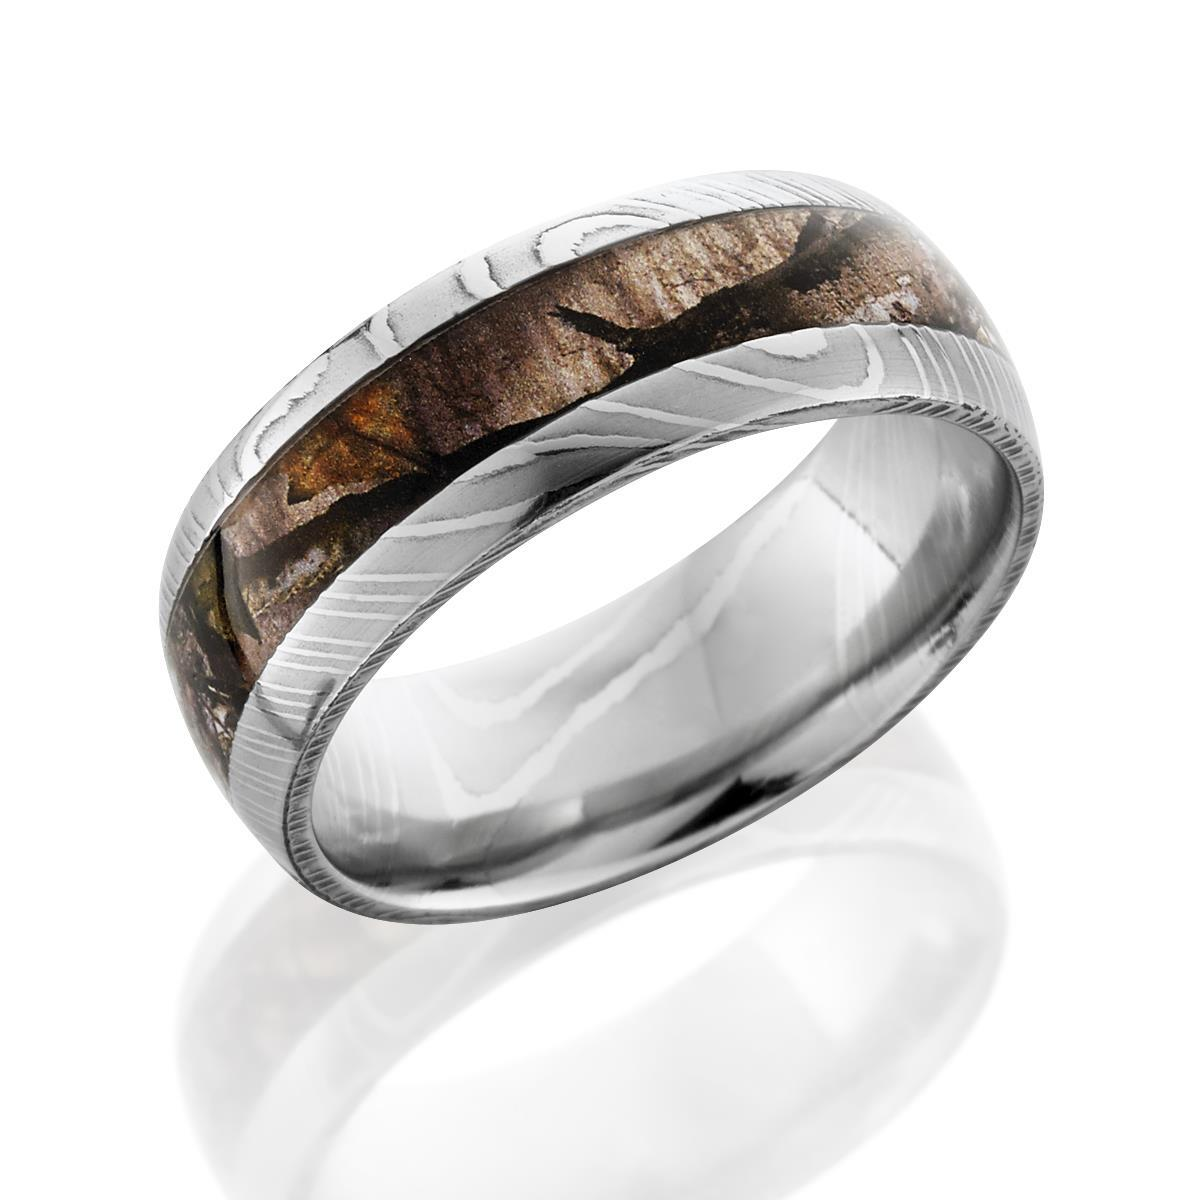 Damascus Steel Camo Ring by Lashbrook Designs